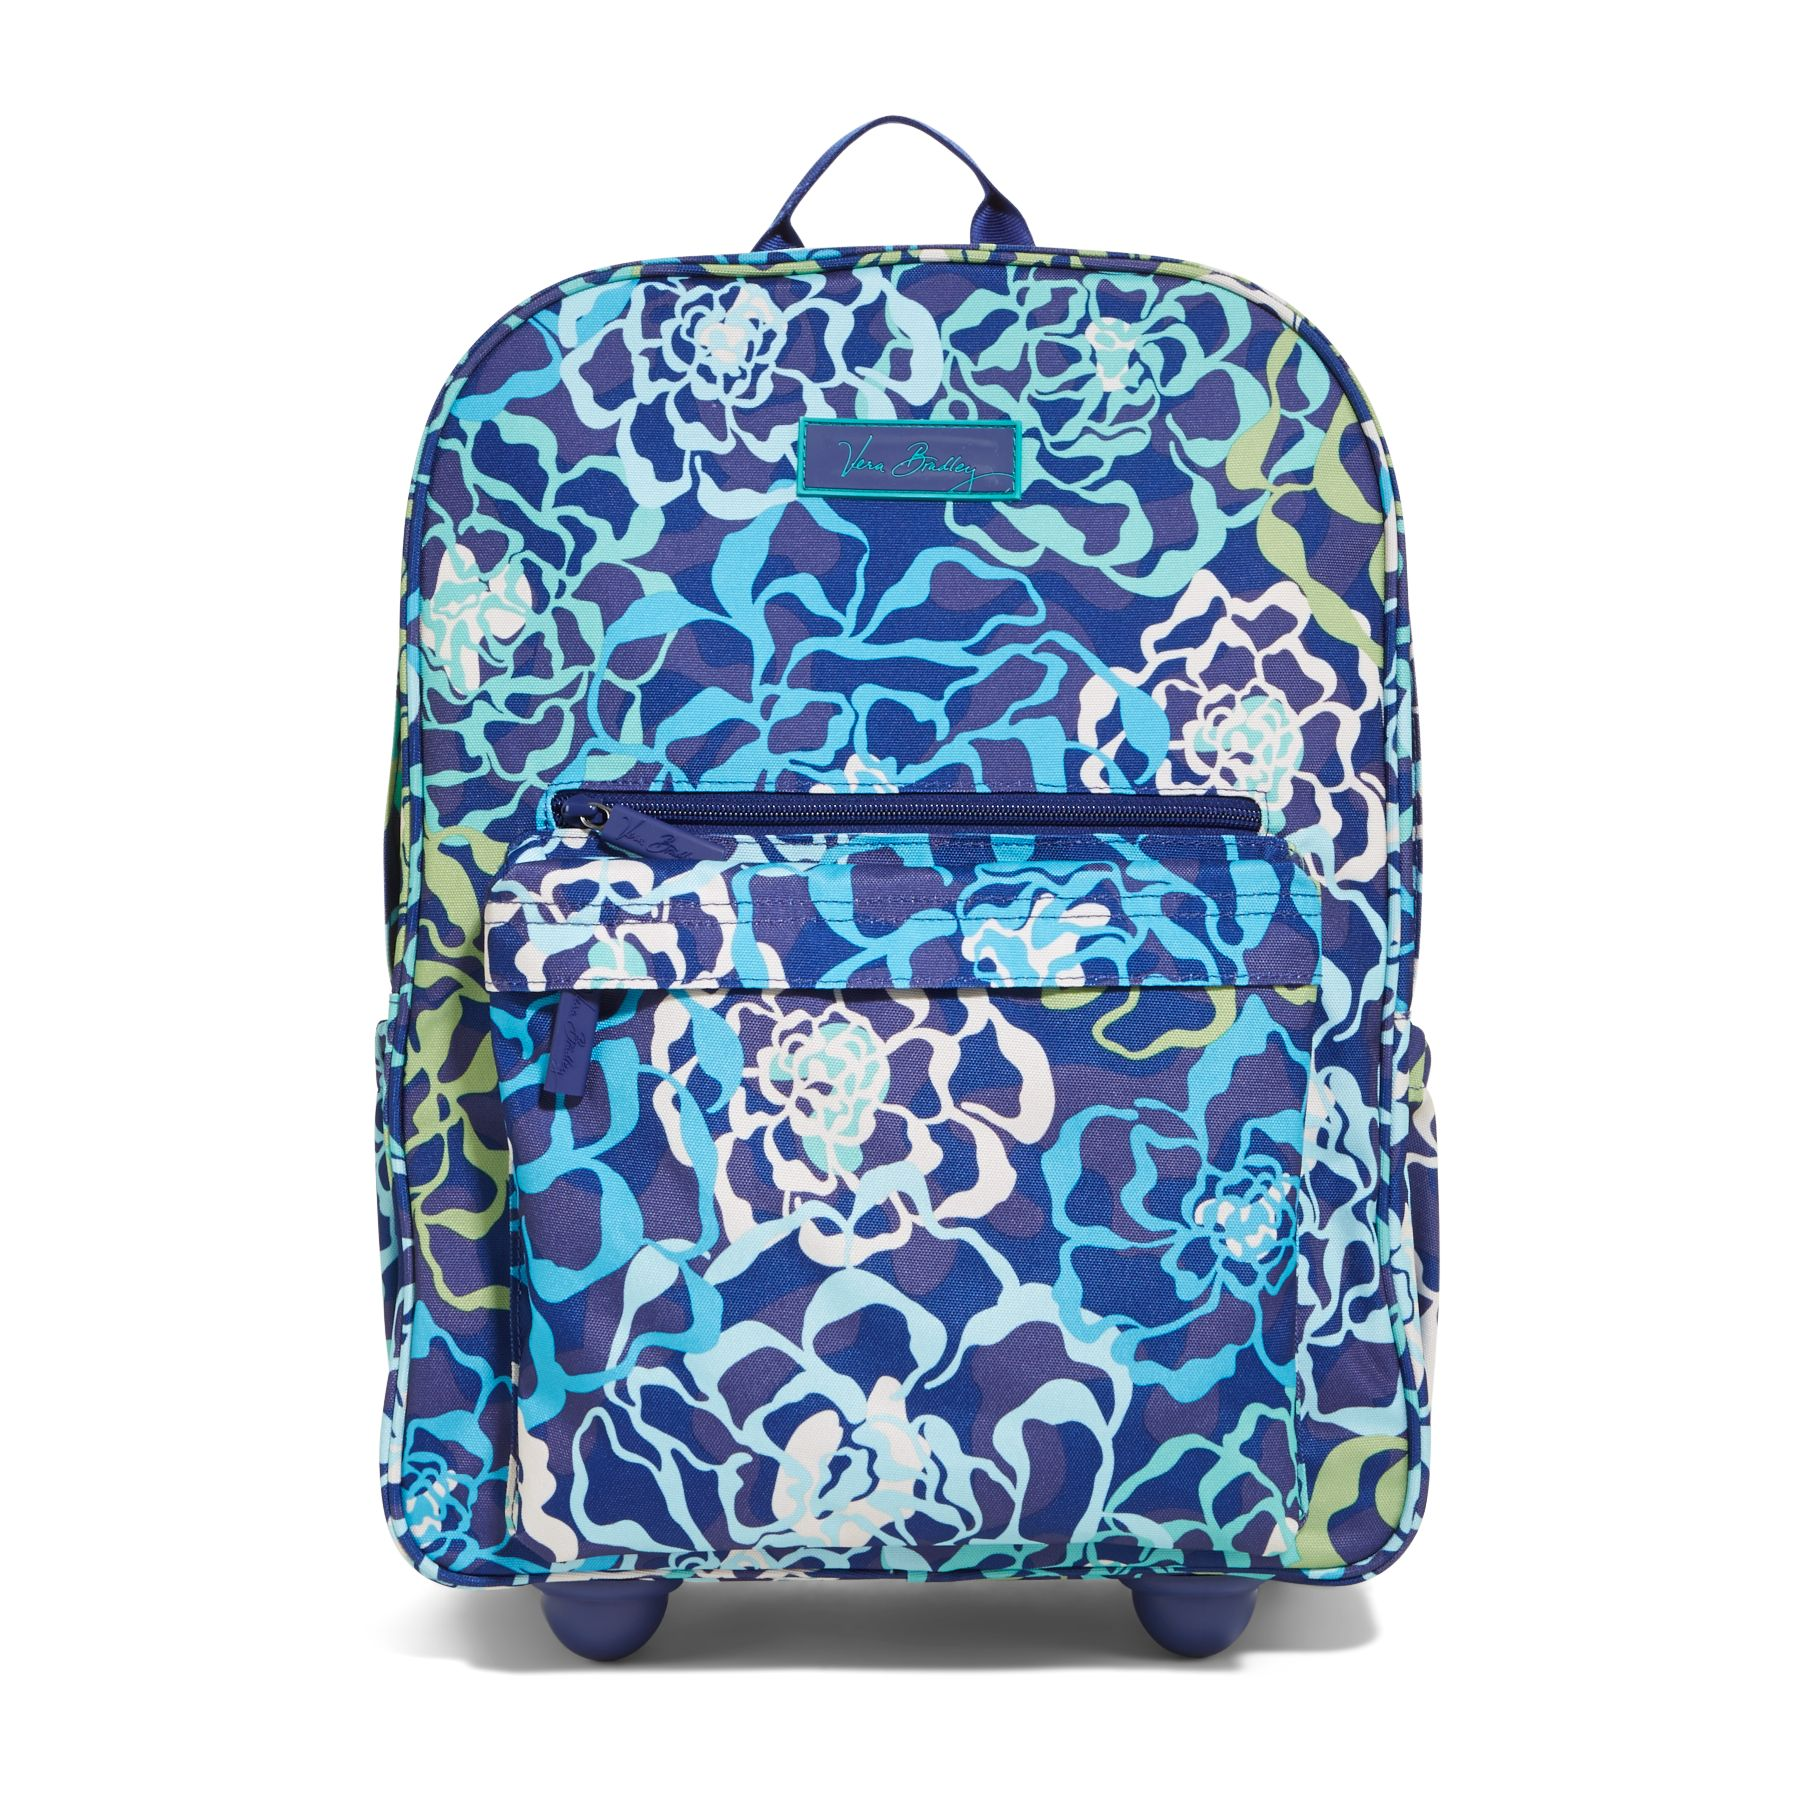 Blue Rolling Backpack - Crazy Backpacks